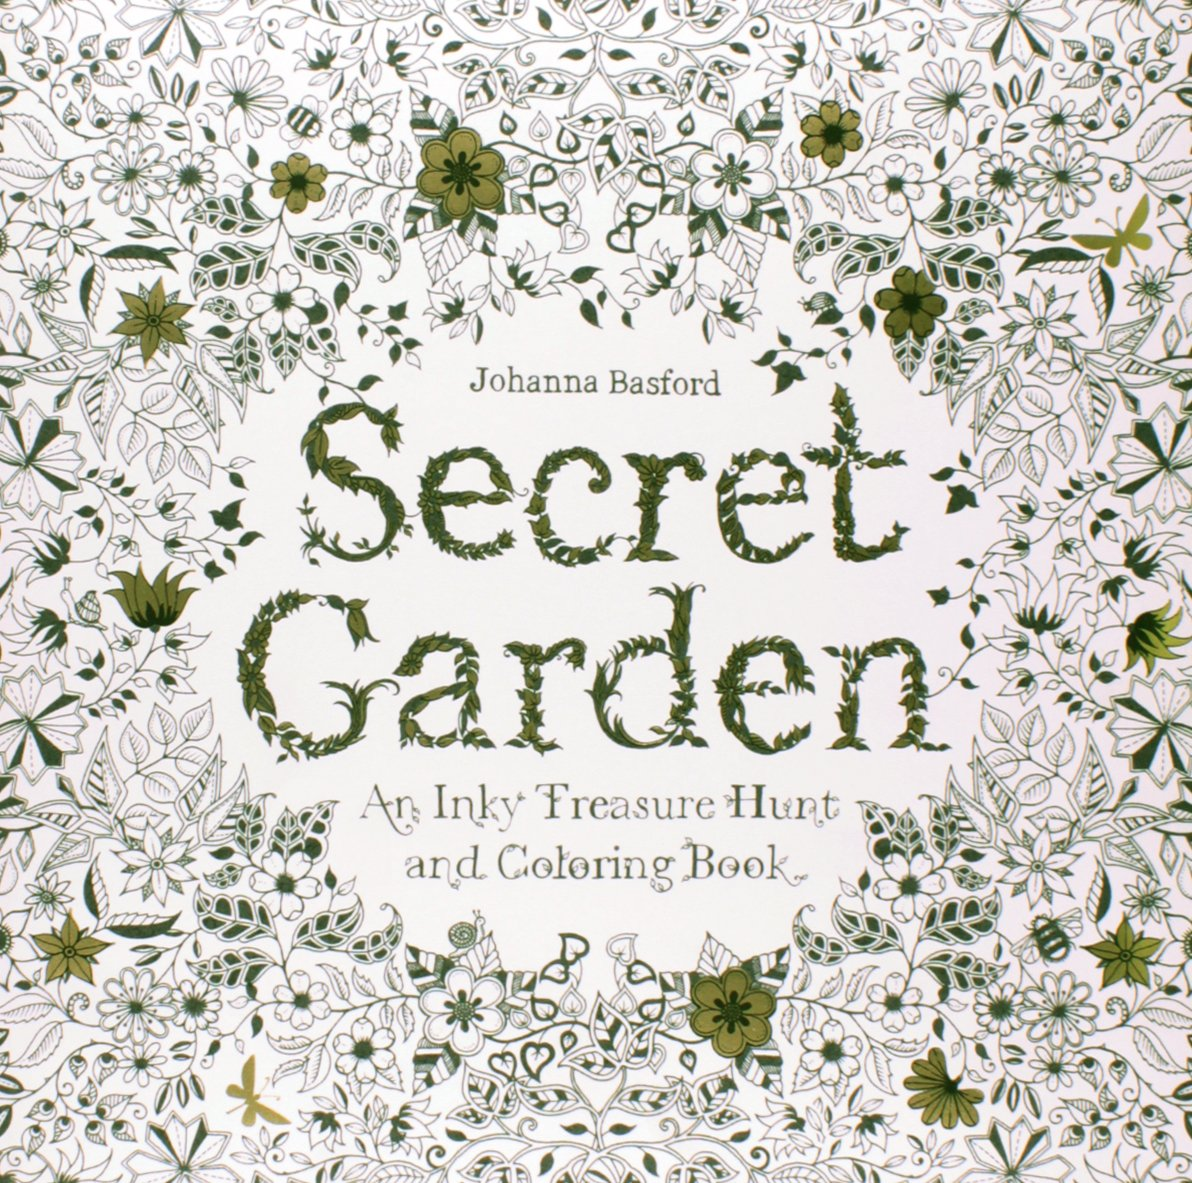 Secret Garden An Inky Treasure Hunt And Coloring Book Singapore